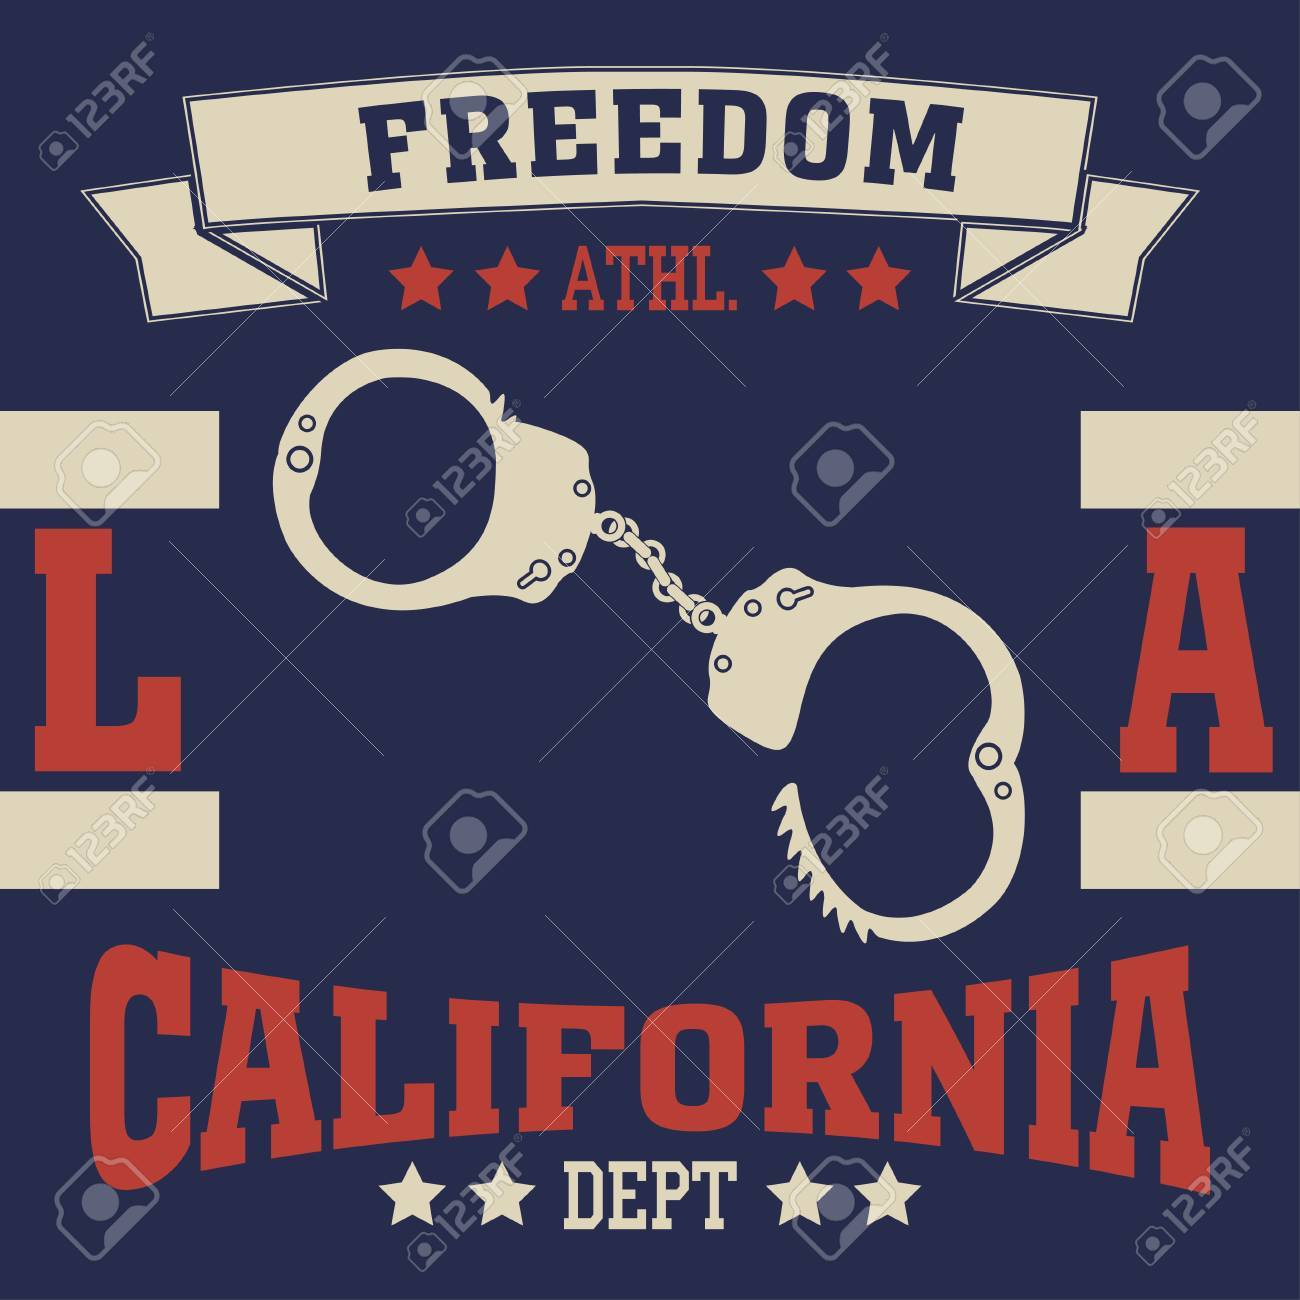 College Fashion Design Print Handcuffs For T Shirt Los Angeles Royalty Free Cliparts Vectors And Stock Illustration Image 68632283